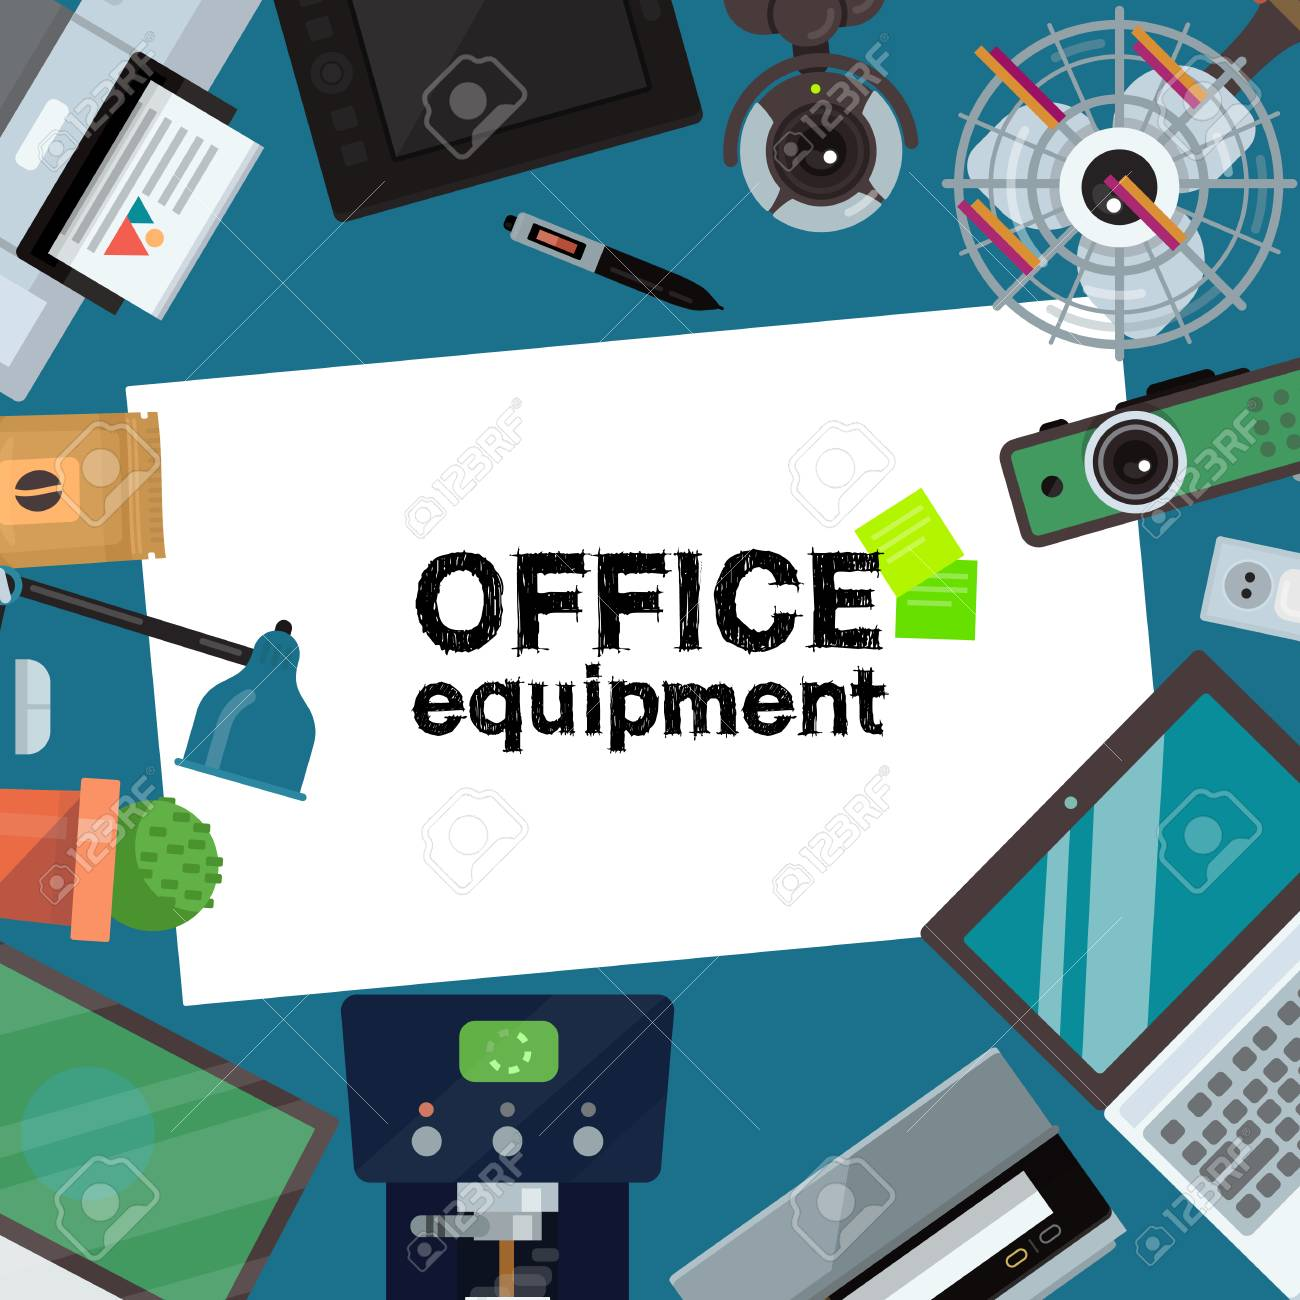 office equipment banner, poster vector illustration. gadgets.. royalty free  cliparts, vectors, and stock illustration. image 125910286.  123rf